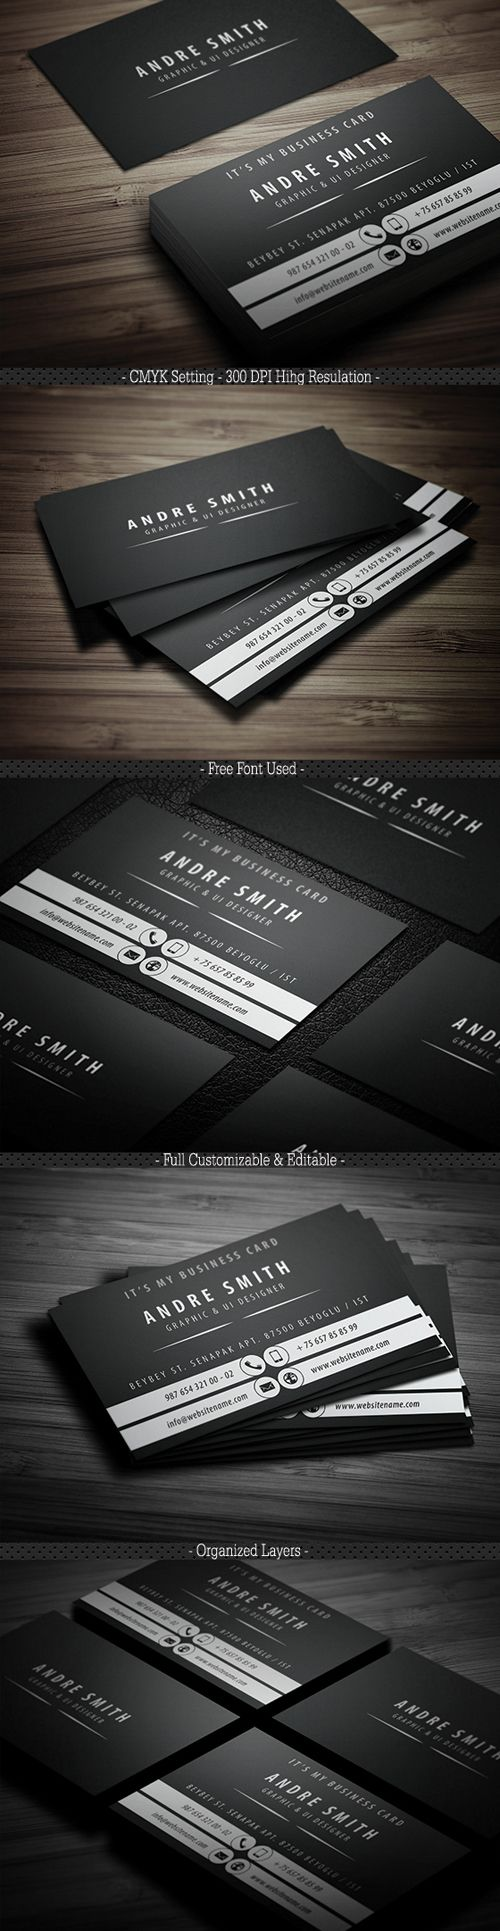 Black Tone Business Card | Design-Identity | Pinterest